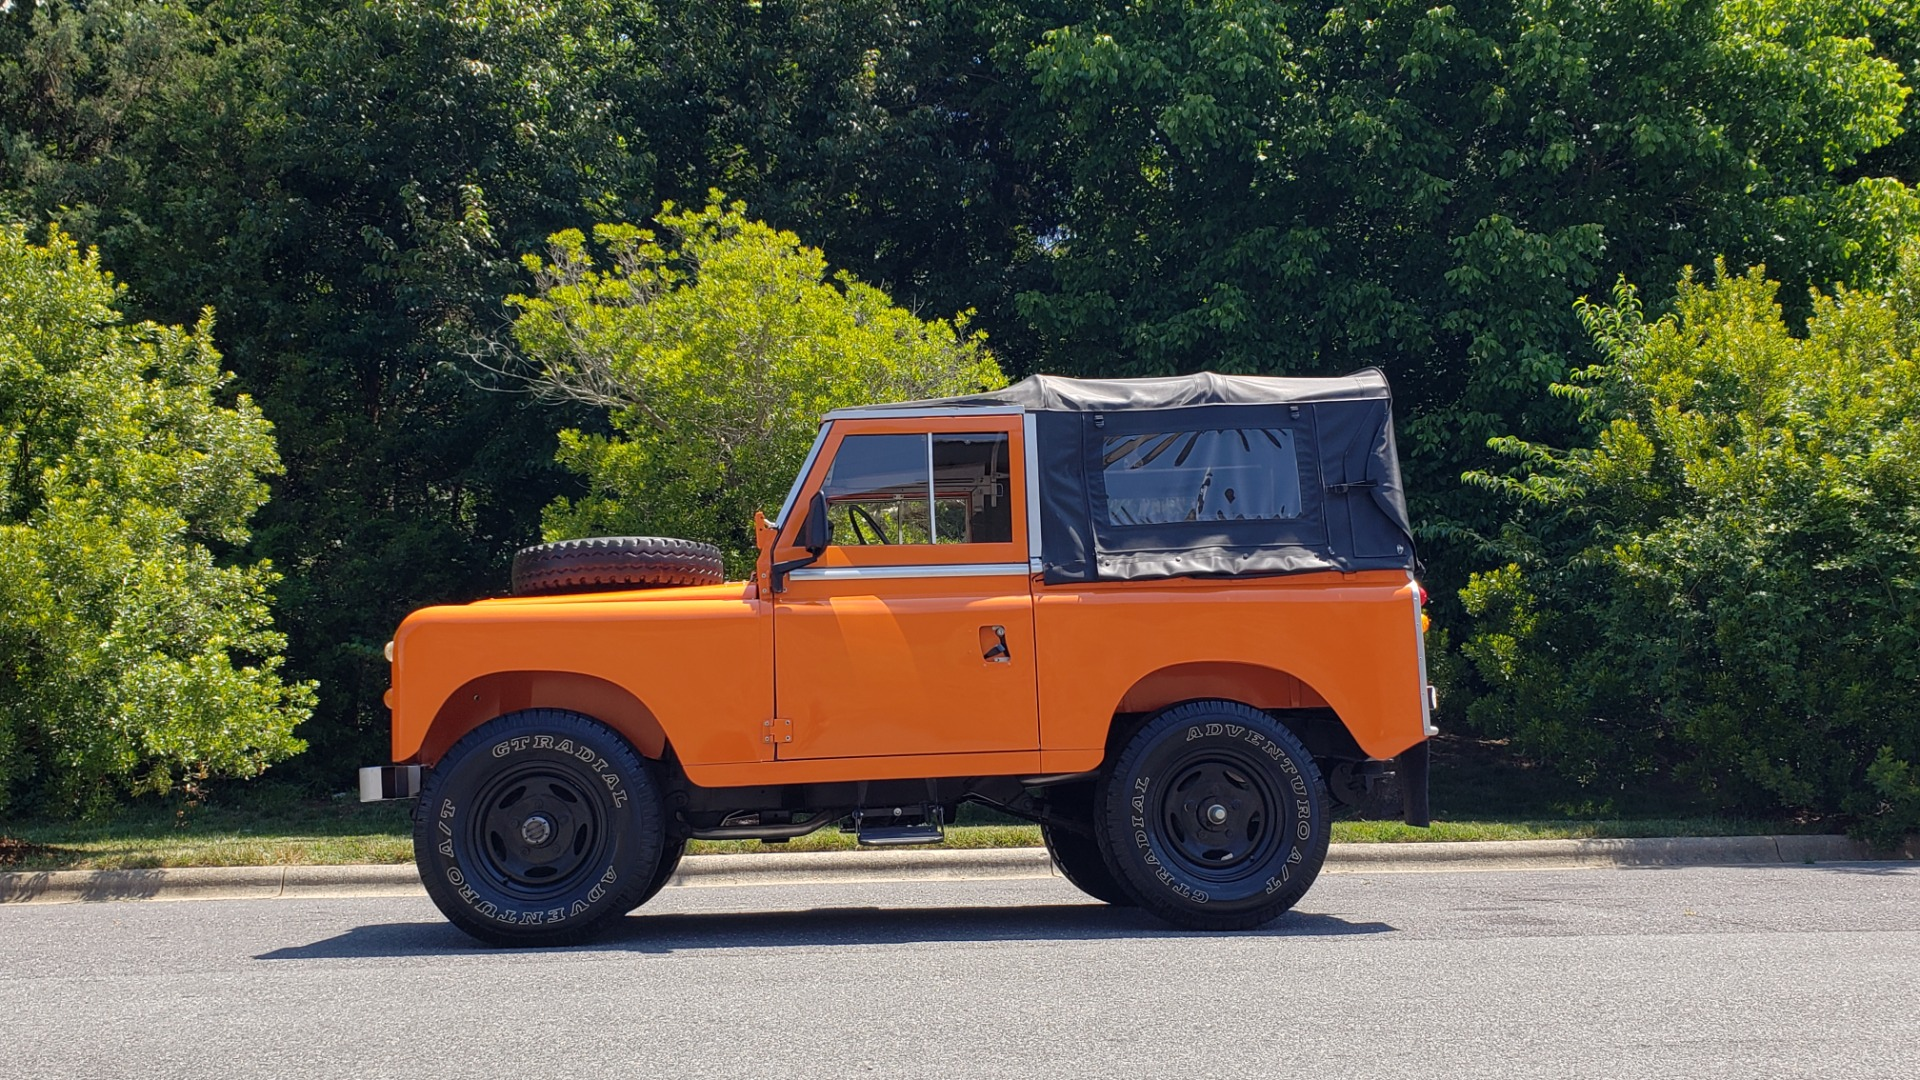 Used 1982 Land Rover SERIES 3 4X4 / SOFT-TOP / FULLY RESTORED / RUNS GREAT for sale $41,900 at Formula Imports in Charlotte NC 28227 2